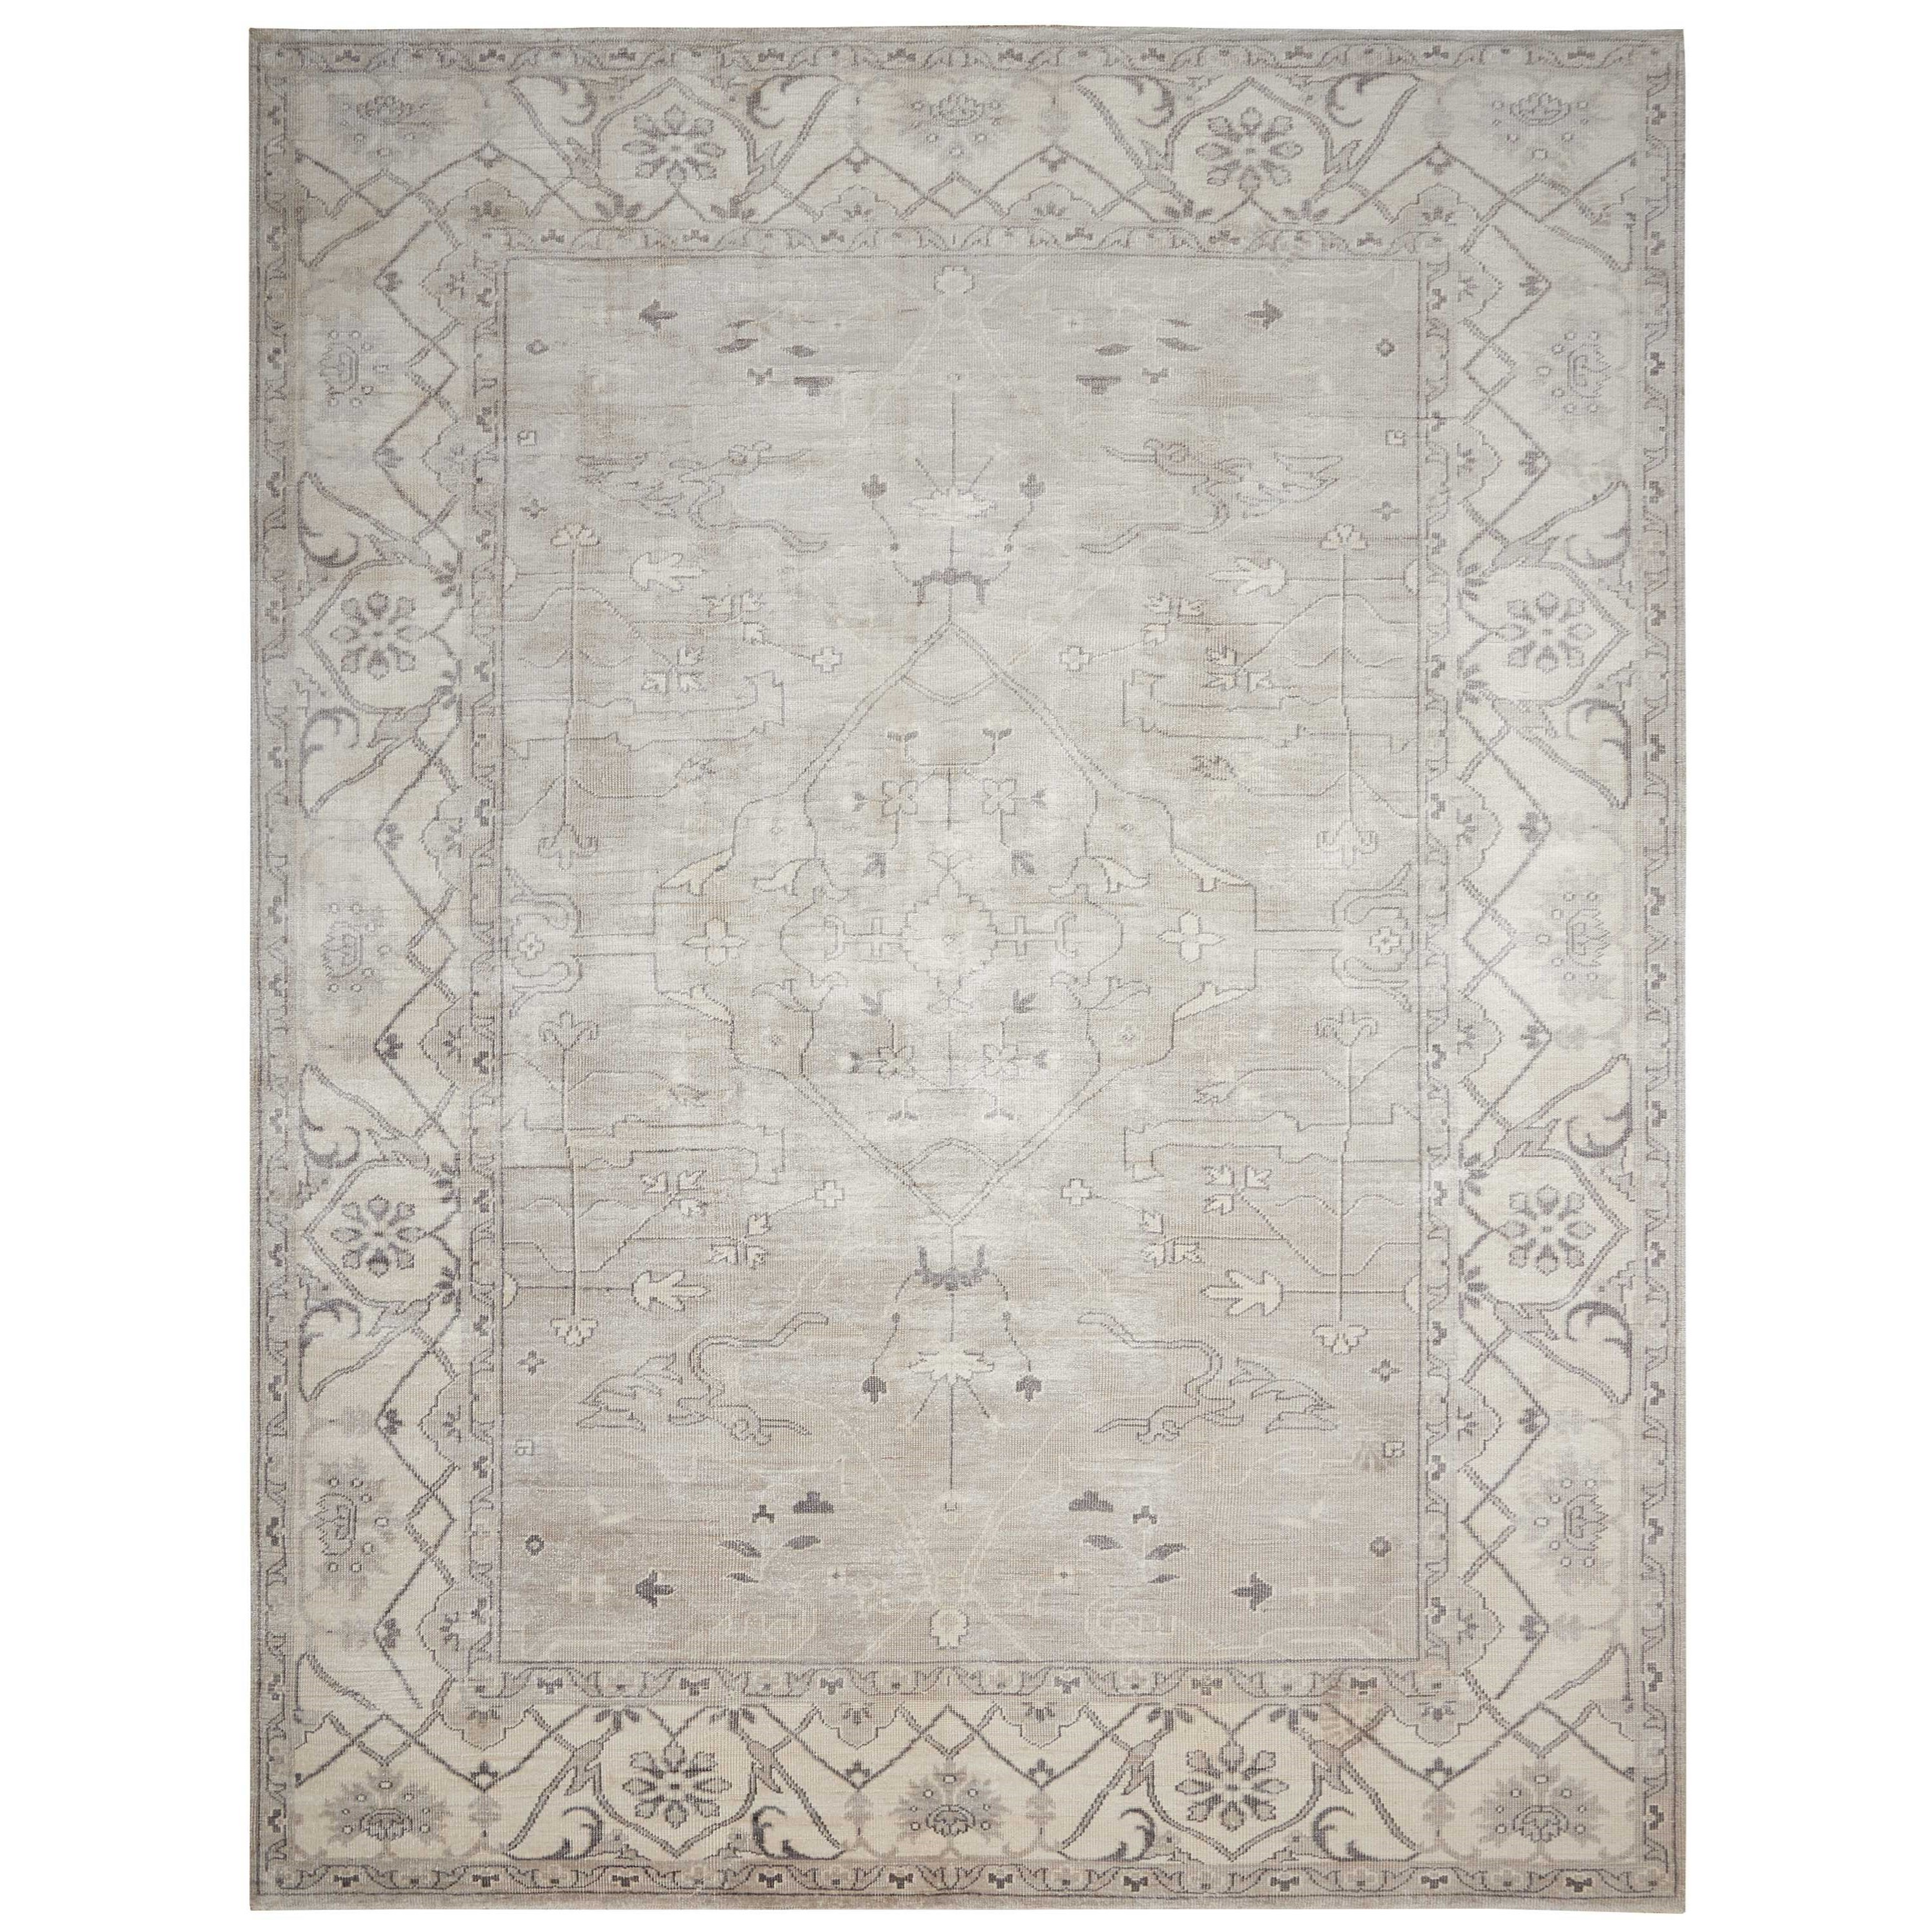 "Aldora1 5'6"" X 8' Silver Rug by Nourison at Home Collections Furniture"